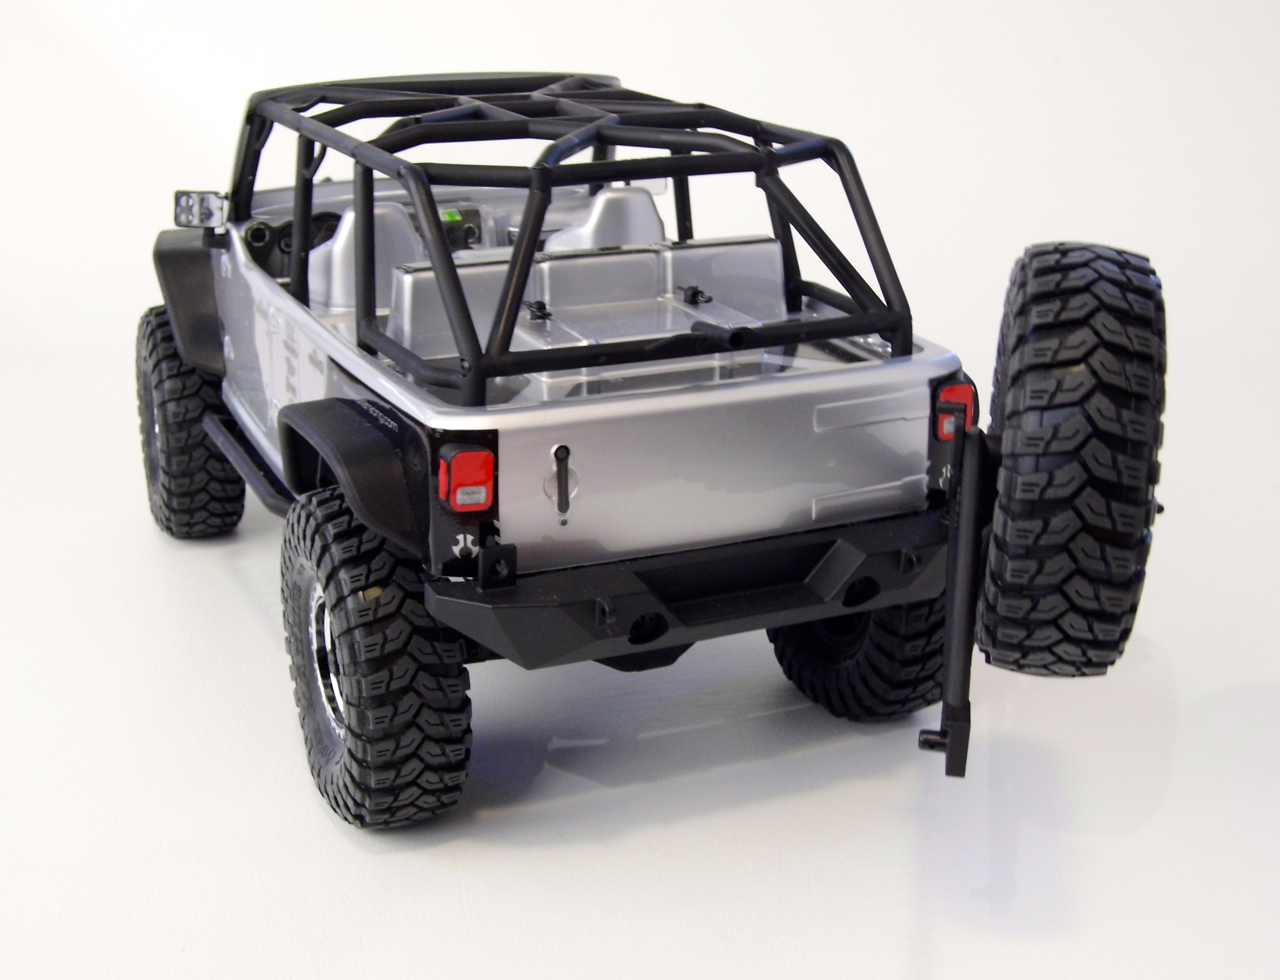 Axial 2012 Jeep Wrangler Unlimited Rubicon Scx10 Rtr